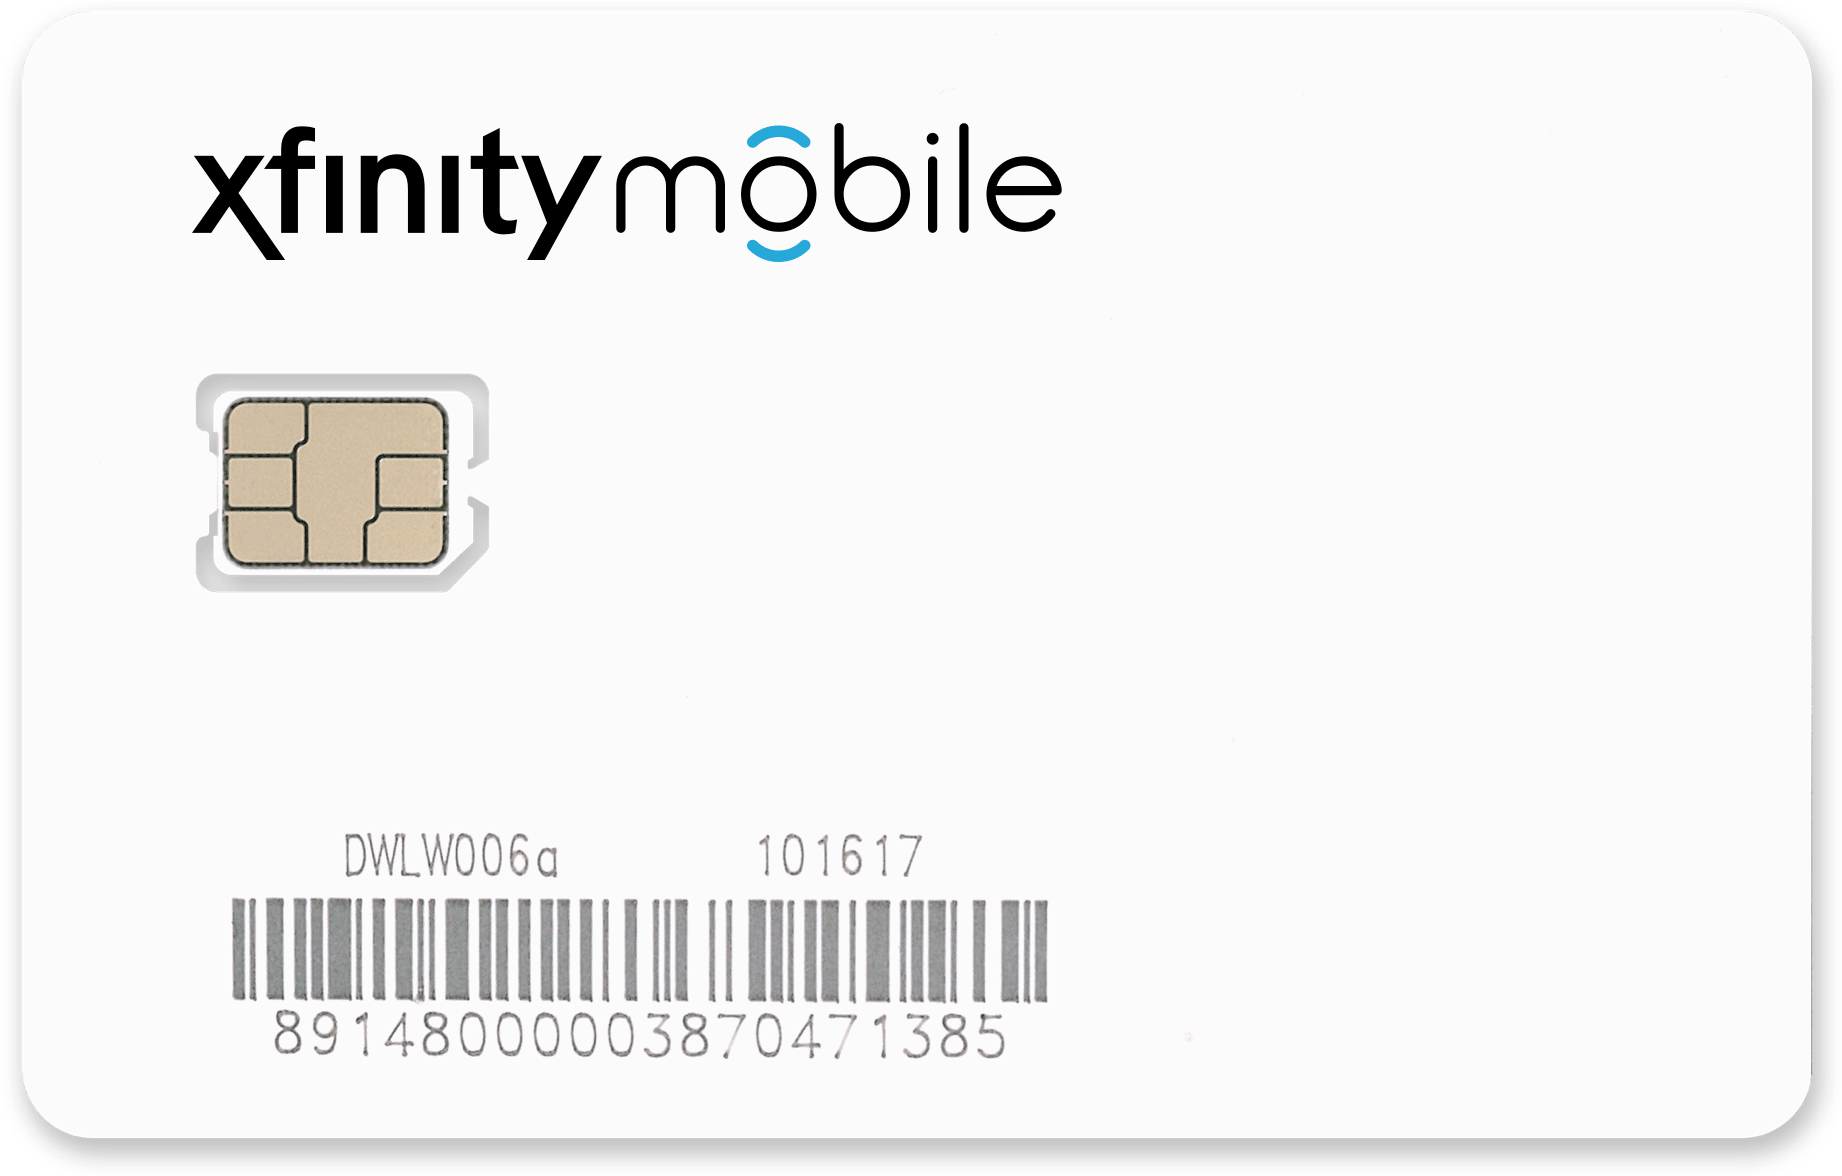 Bring Your Own Phone (BYOD) to Xfinity Mobile